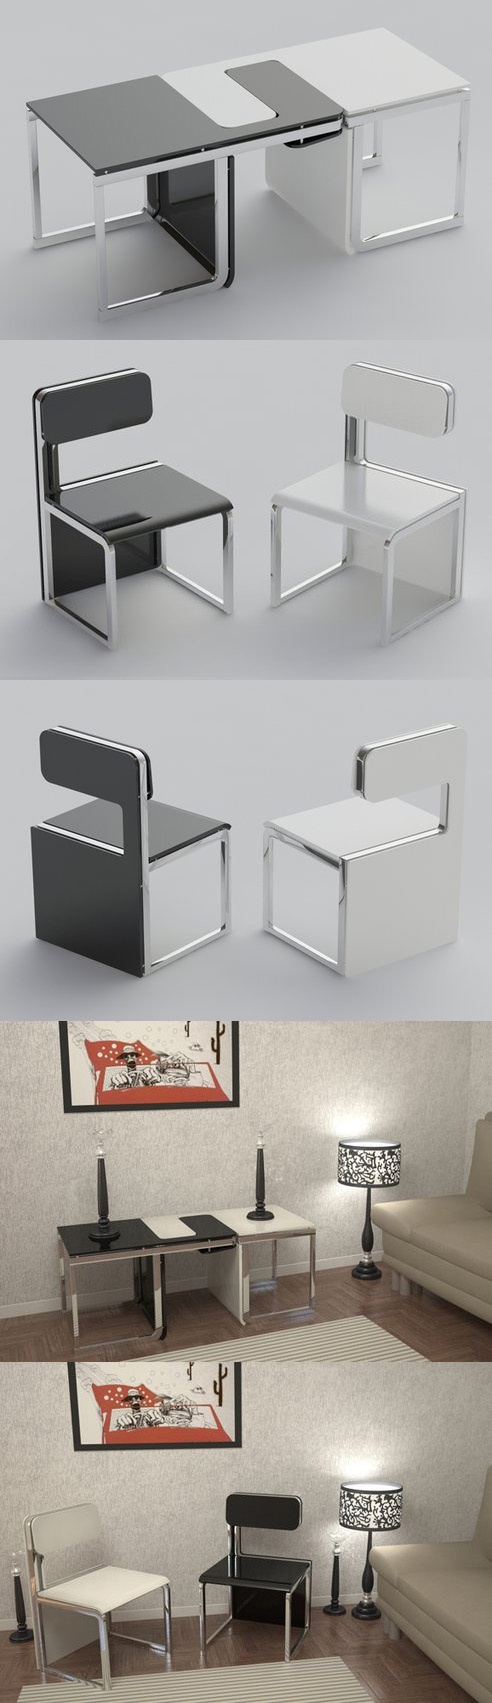 Multi Functional Chair Perfect For Small Apartments